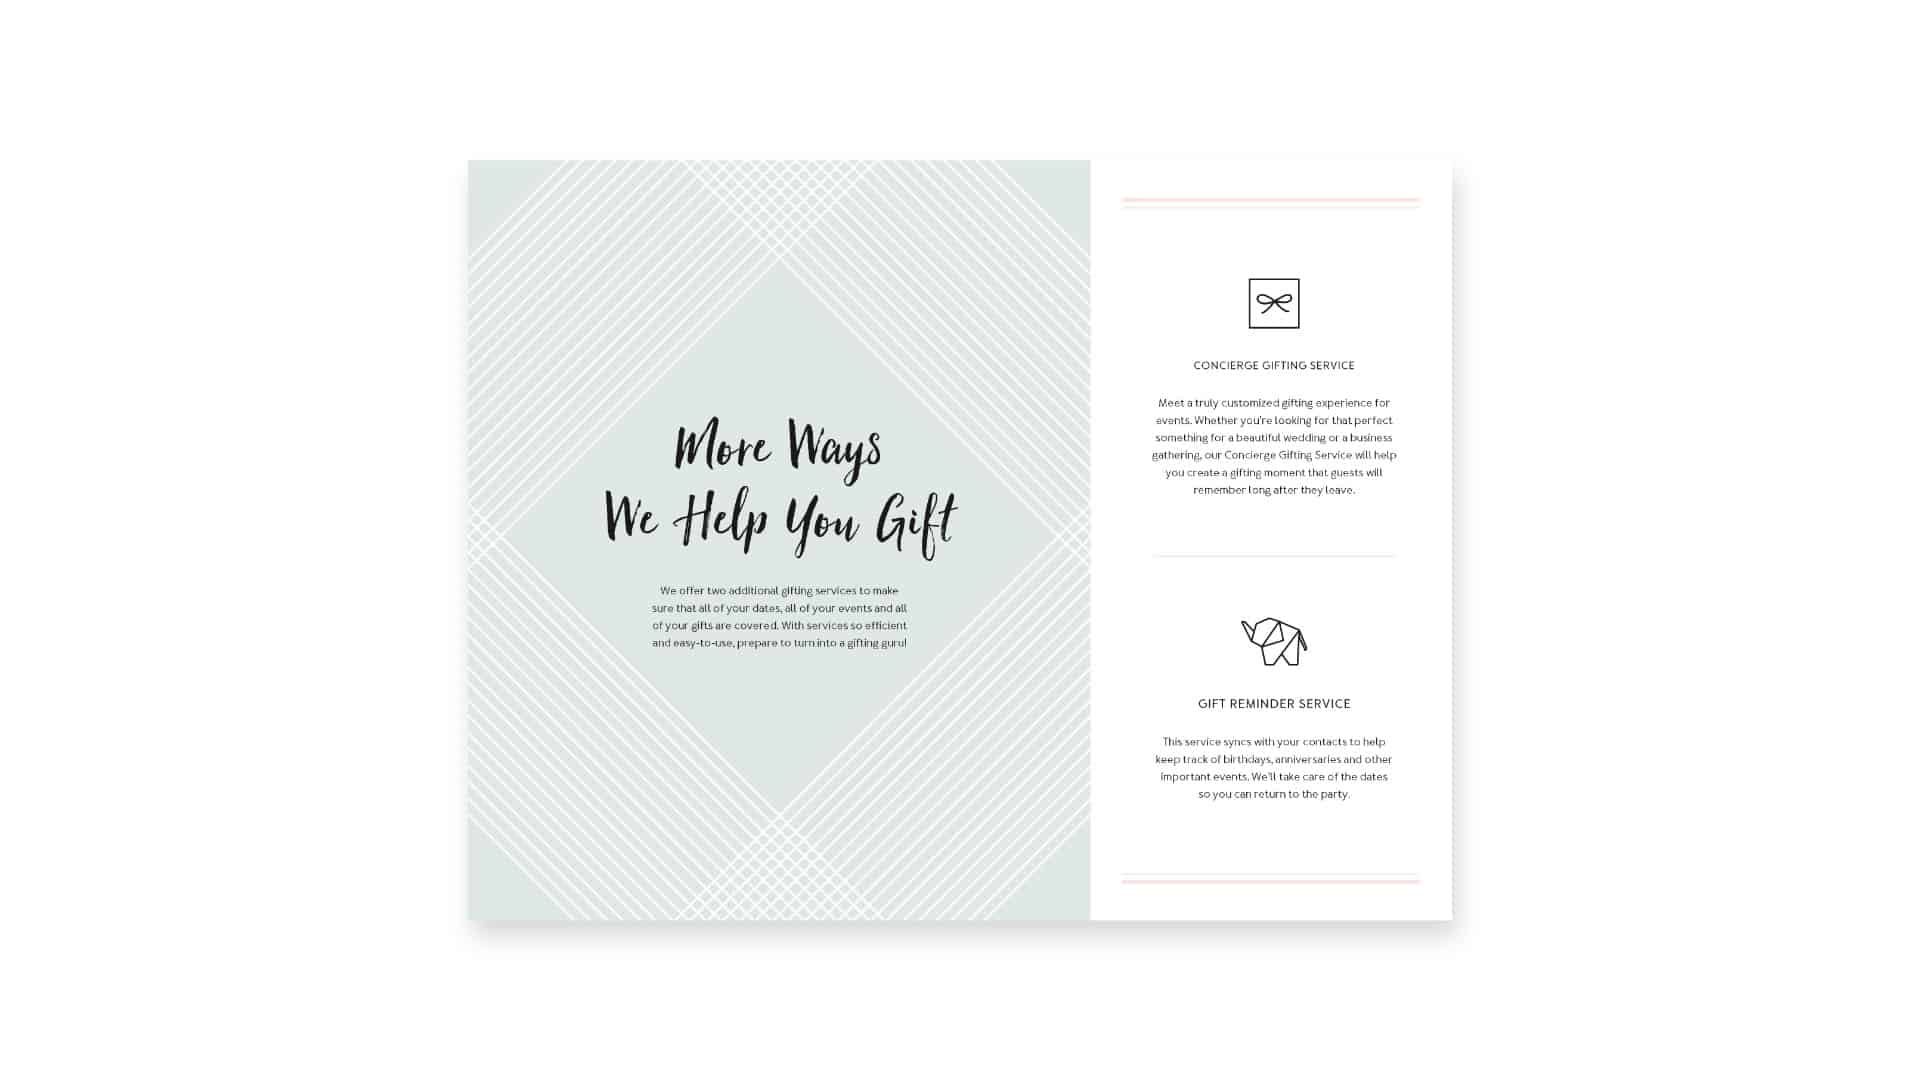 More Ways We Help You Gift - Creative Banding Agency - Citizen Best